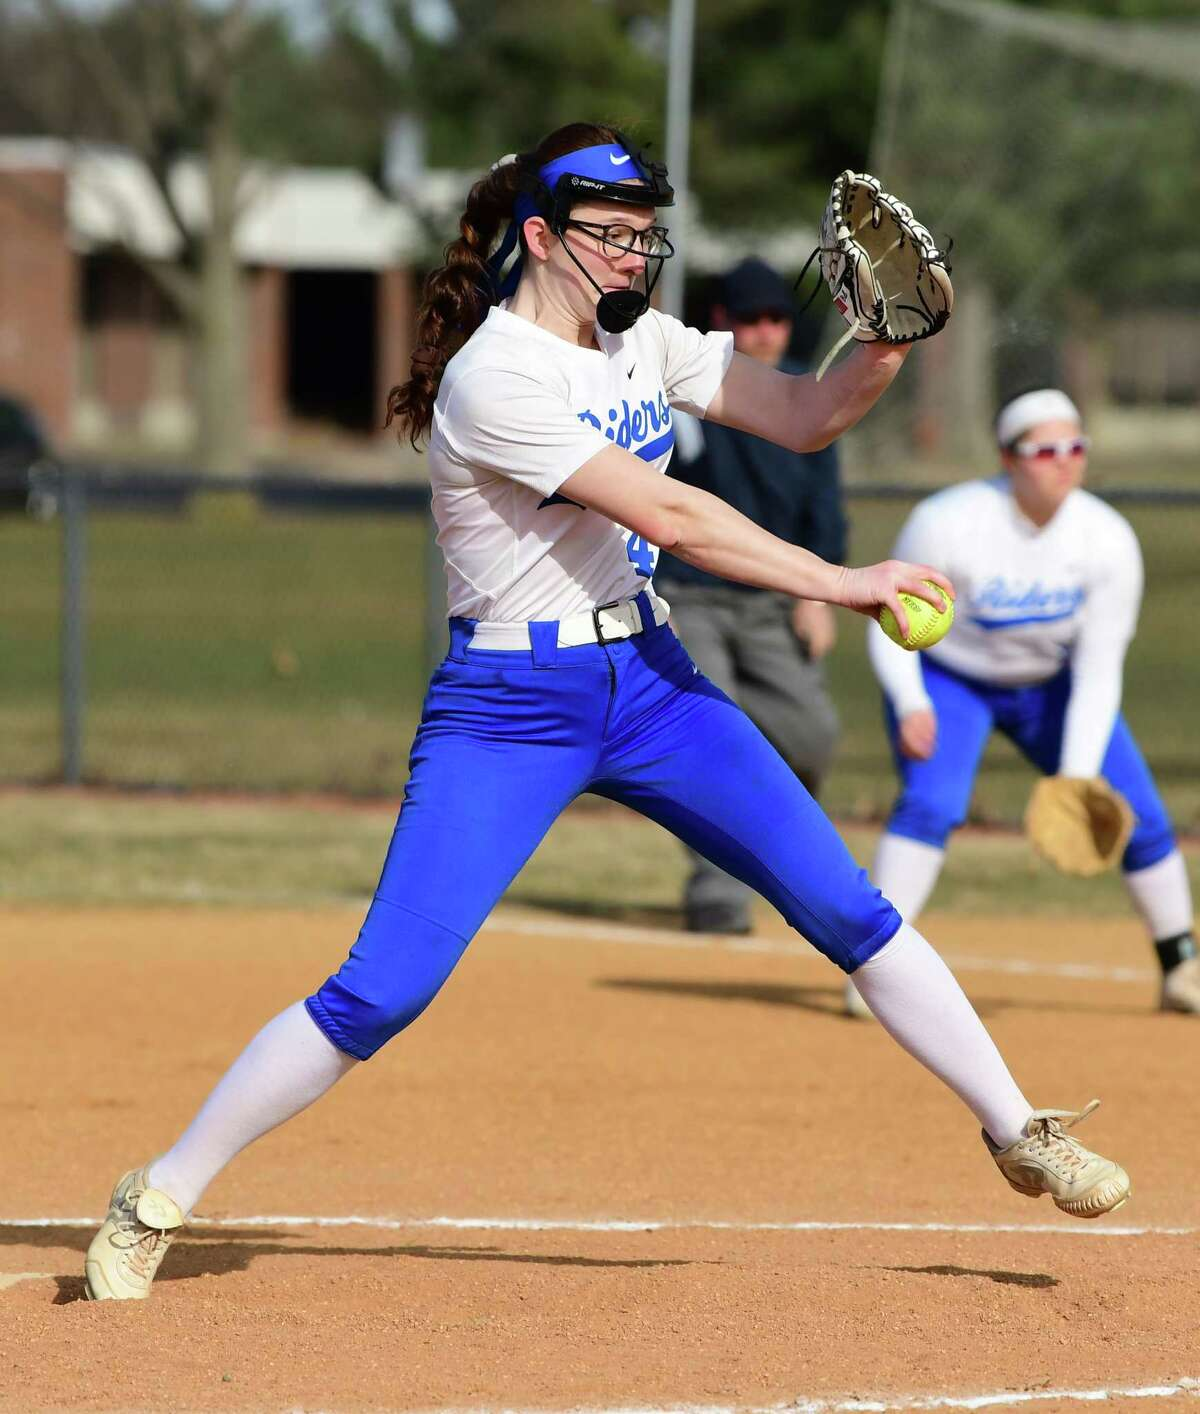 Ichabod Crane pitcher Bella Milazzo throws the ball during a softball game against Holy Names on Thursday, April 4, 2019 in Valatie, N.Y. (Lori Van Buren/Times Union)